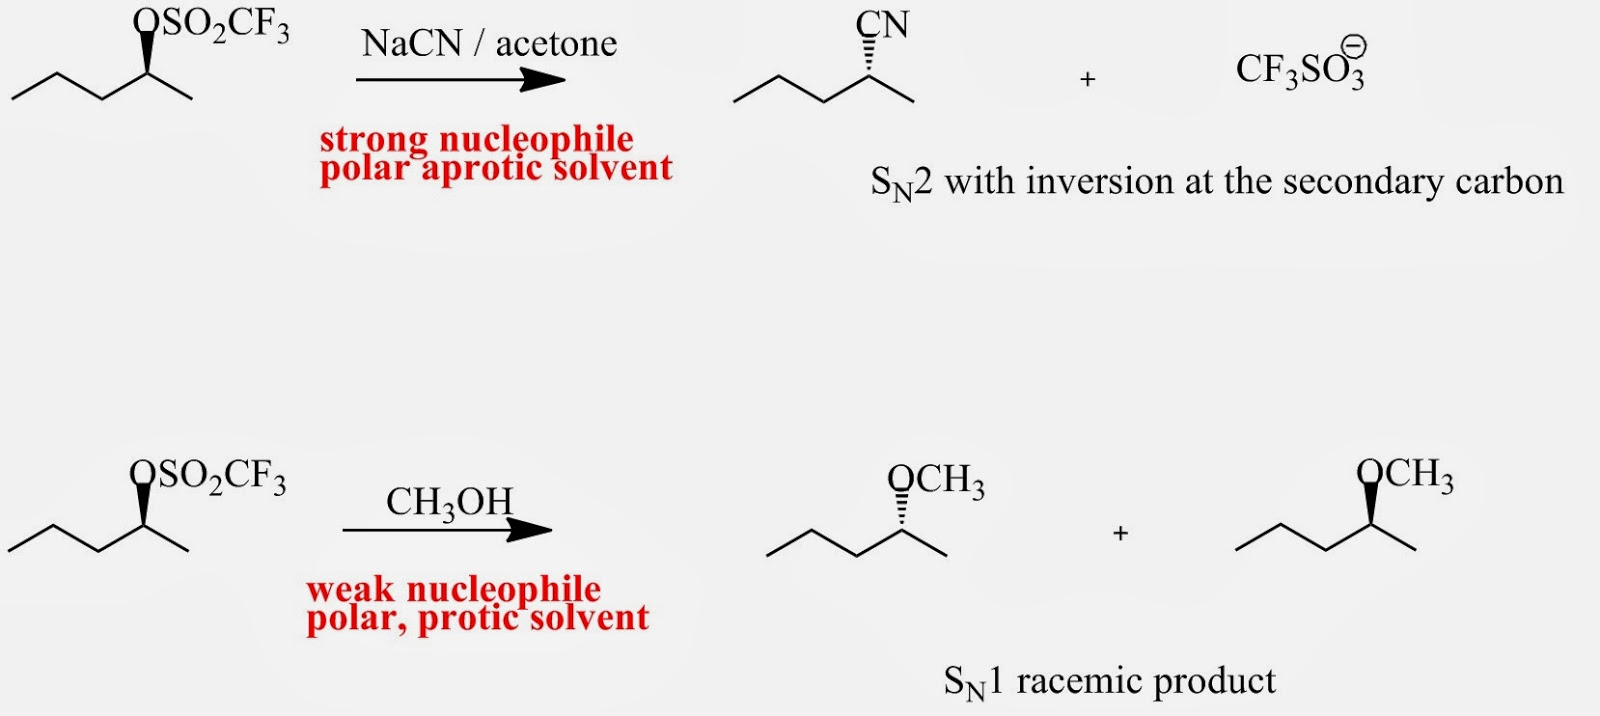 Fig. 3: The secondary substrate shown above reacts with CN- - a strong nucleophile - in a polar aprotic solvent acetone under  SN2 conditions giving an inverted product at the secondary carbon. The same substrate reacts with OH- - a weak nucleophile – in a polar protic solvent like methanol under SN1 conditions giving a racemic mixture